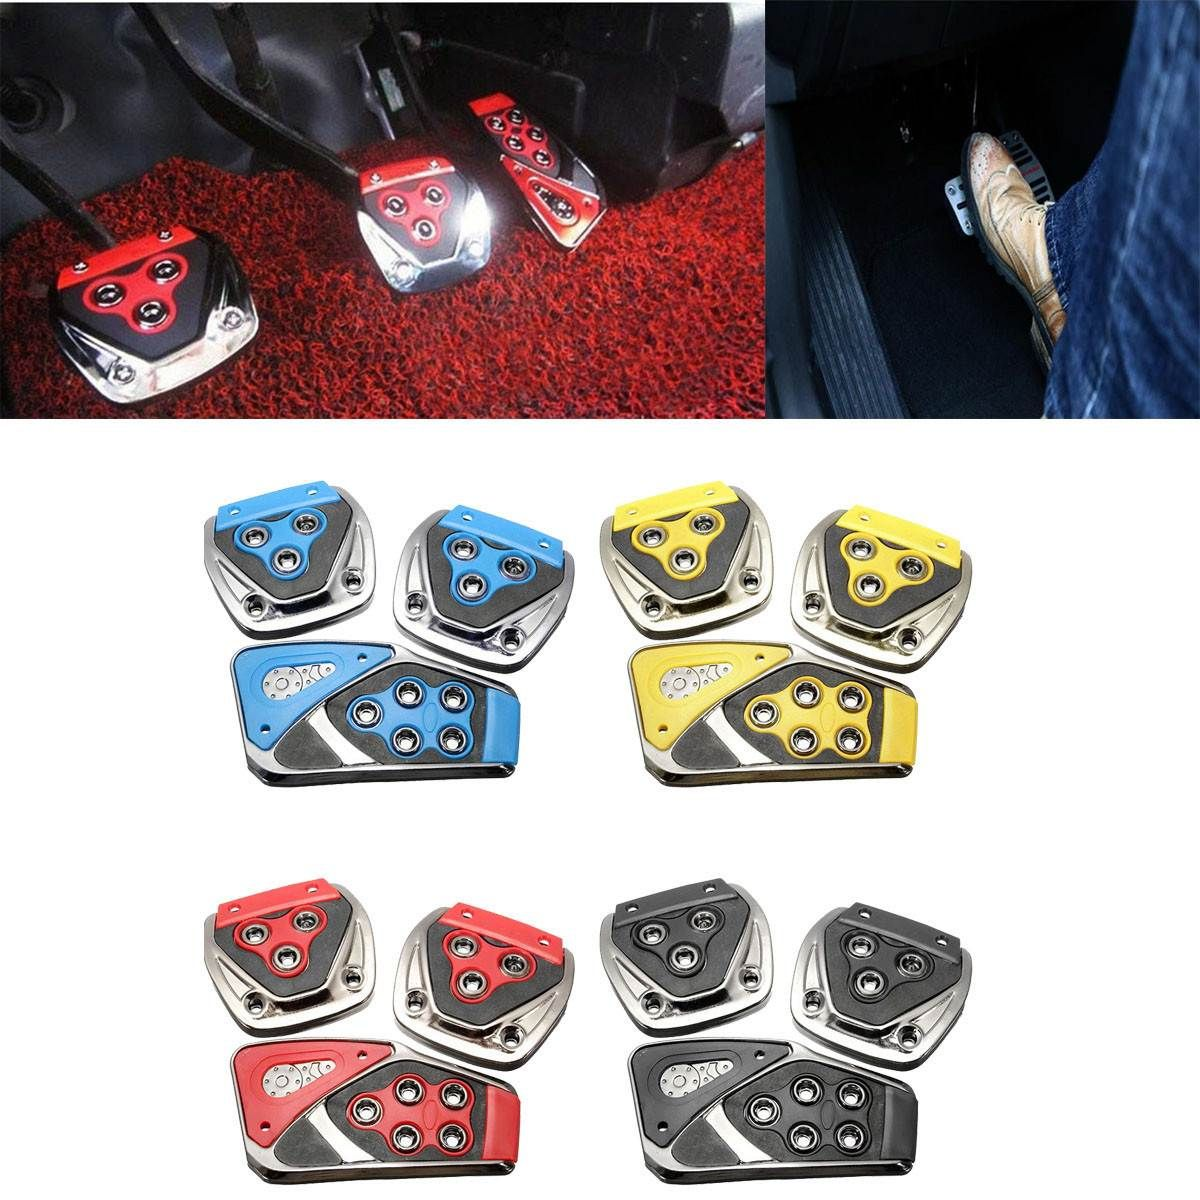 3Pcs/Set Non Slip Manual Brake Transmission Car Pedal Cover Clutch Accelerator Pad Blue Red Black Yellow